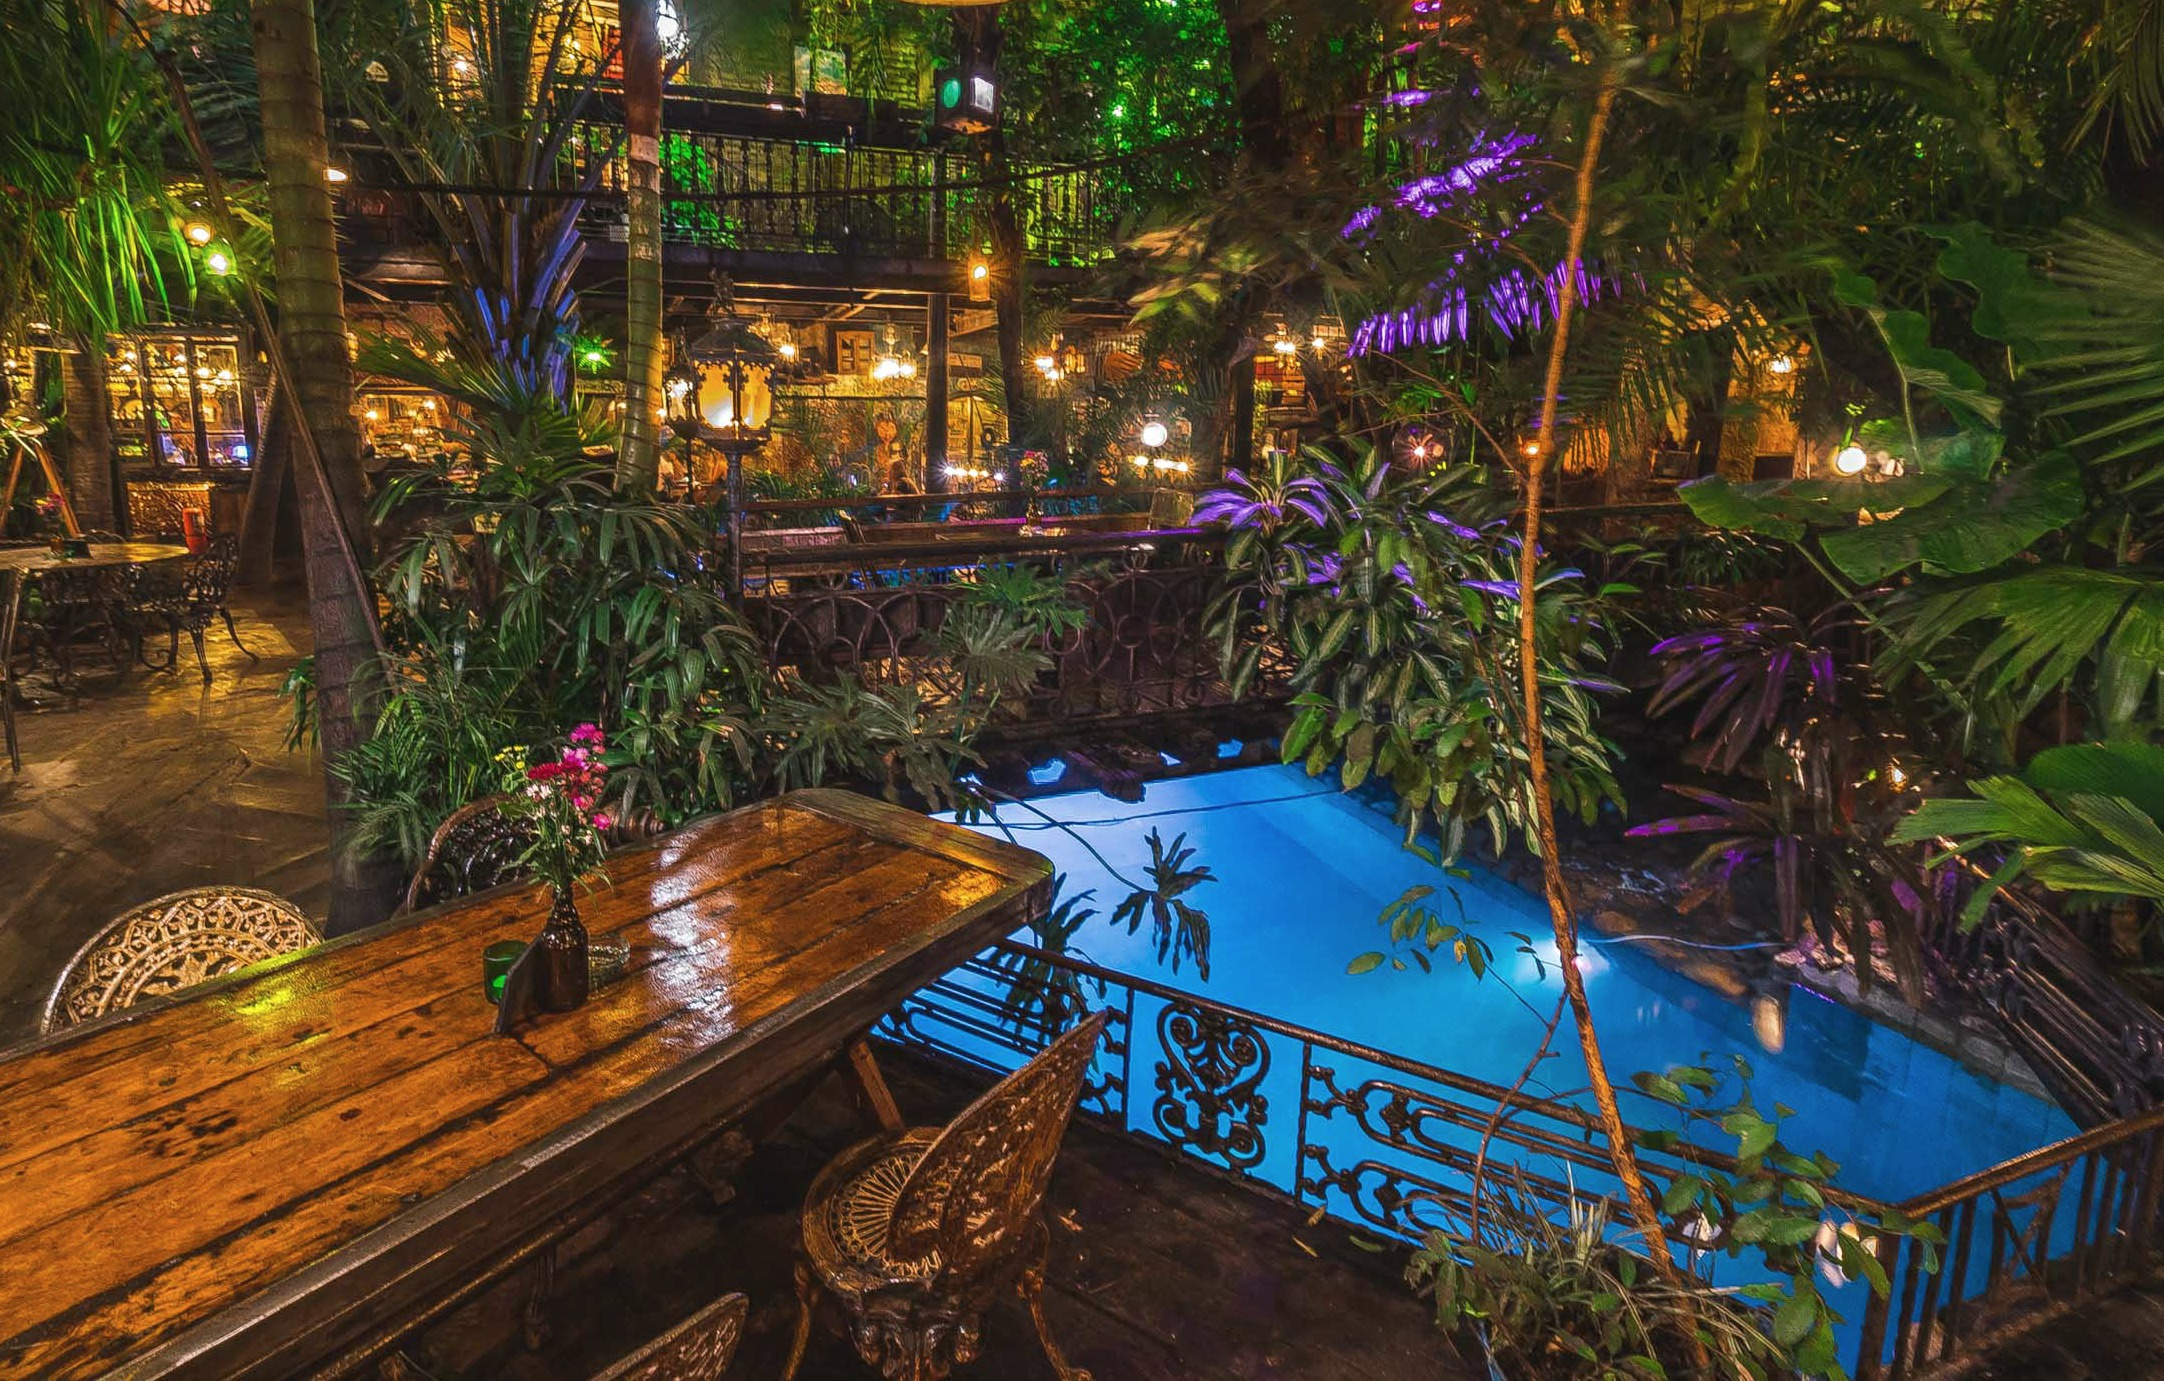 Favela Bali, 5 Bali cafe's you need to flaunt on Instagram